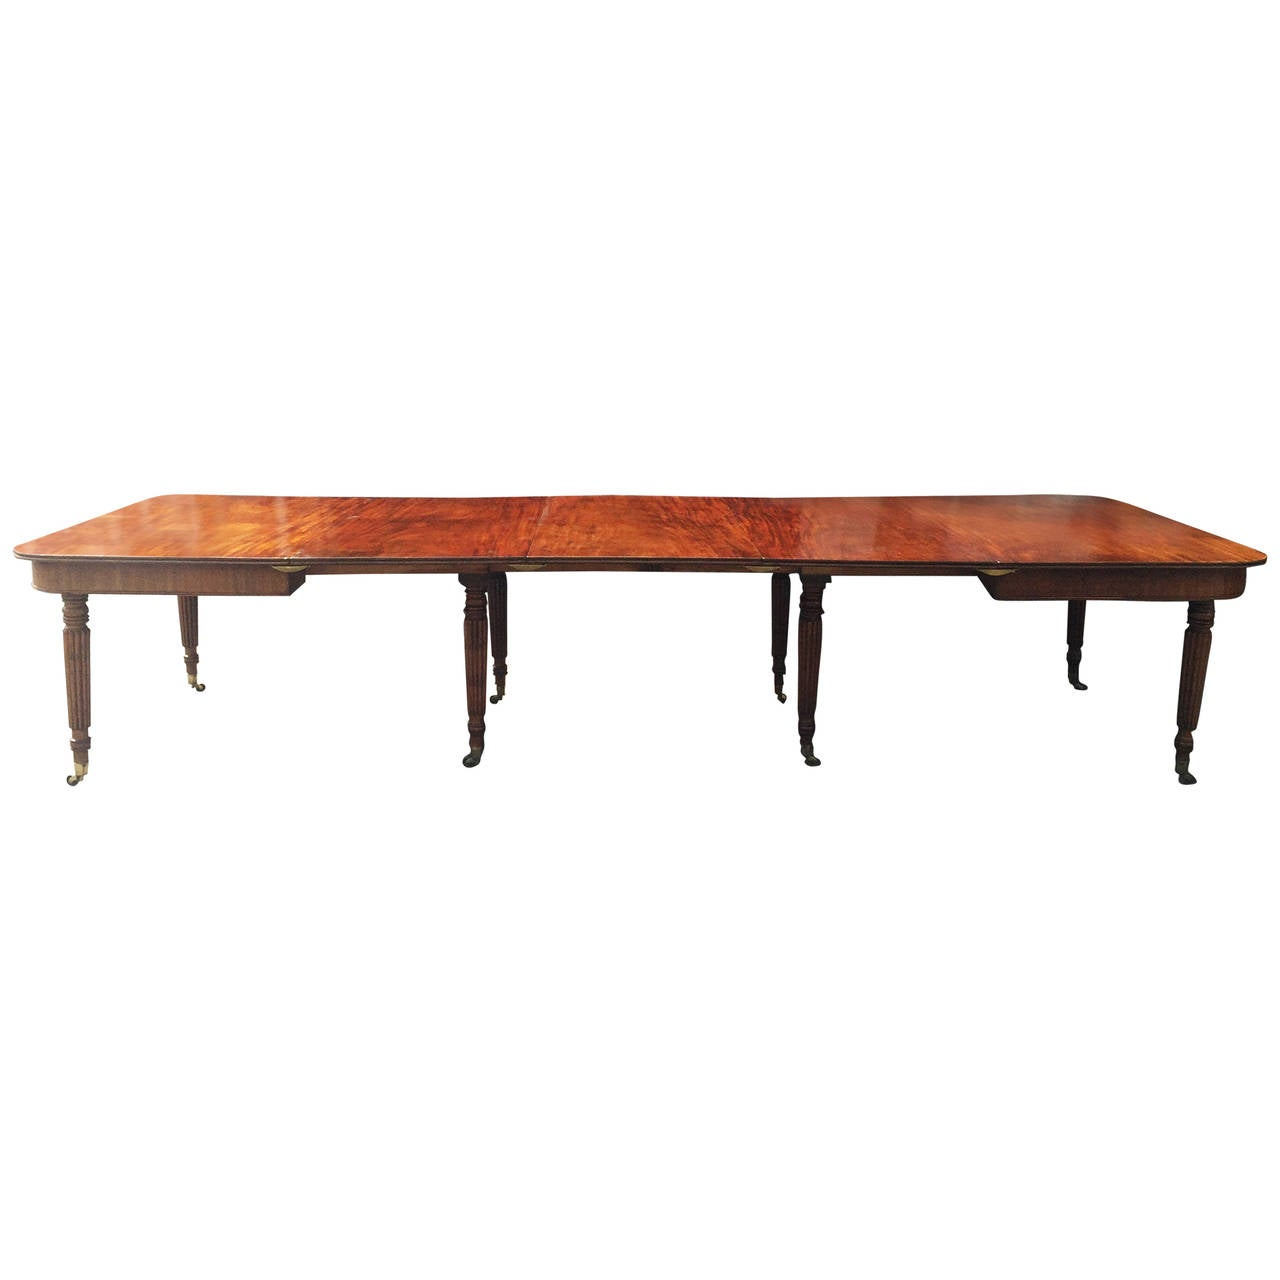 Gillows Influenced Regency Extending Dining Table For Sale At 1stdibs